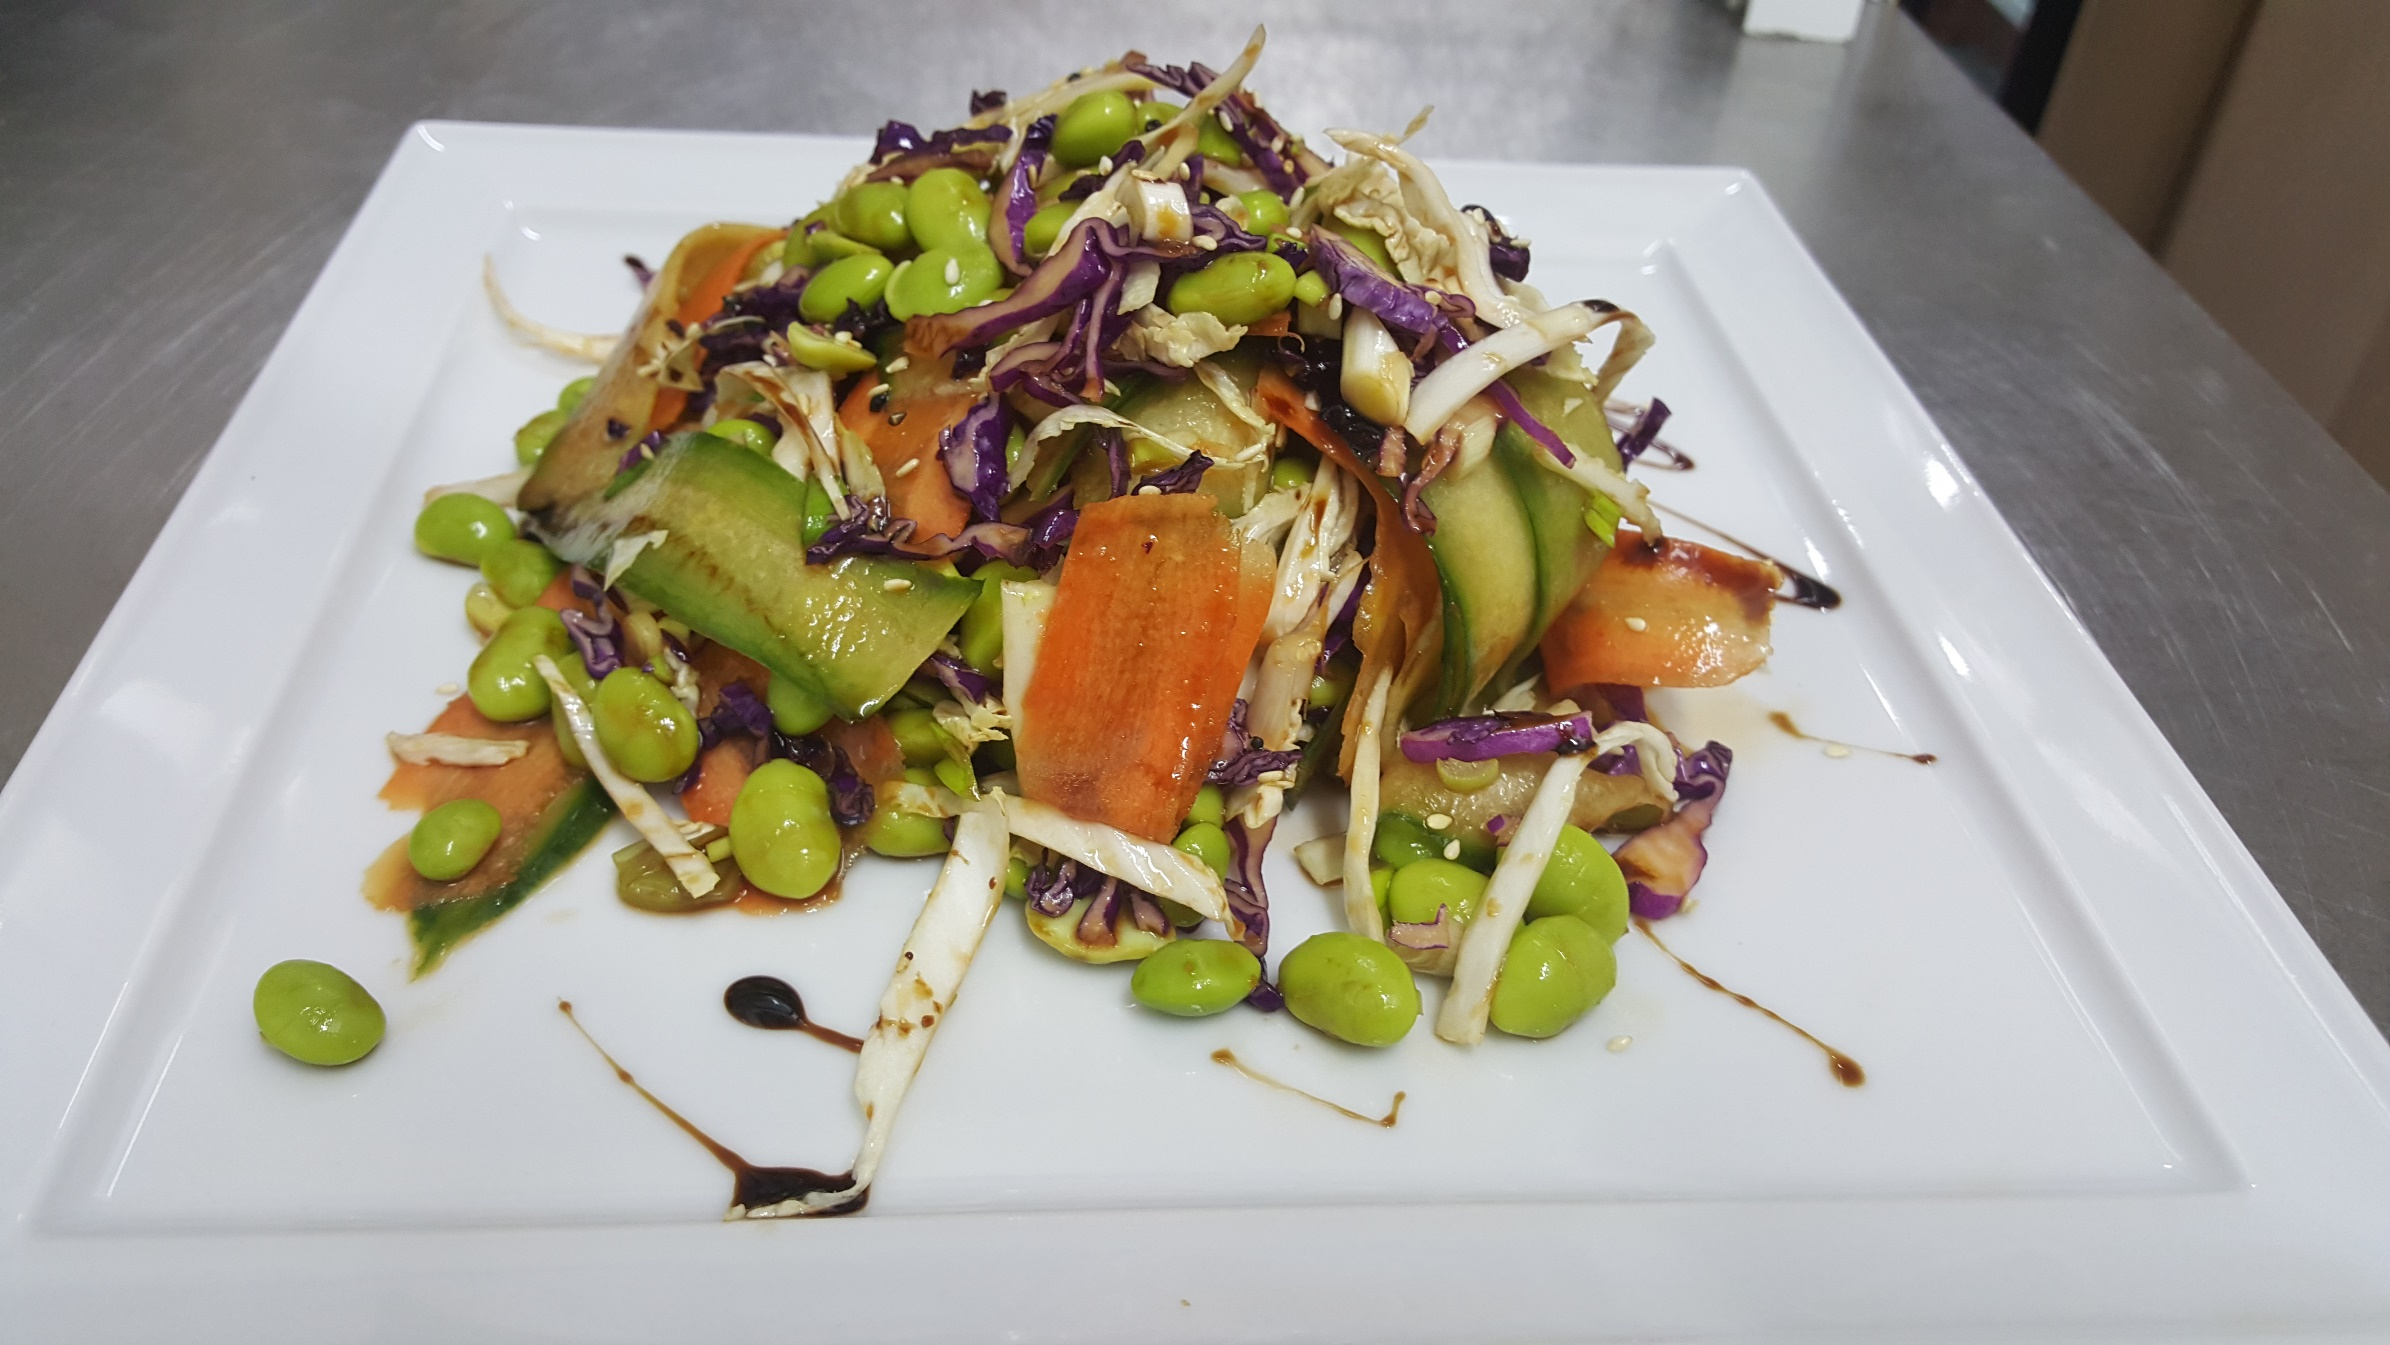 EDAMAME SALAD - green edamame beans, two kind of colorful cabbage, carrots, cucumbers and green onion, seasoned with fresh dressing with ginger, sesame and sweet chilli